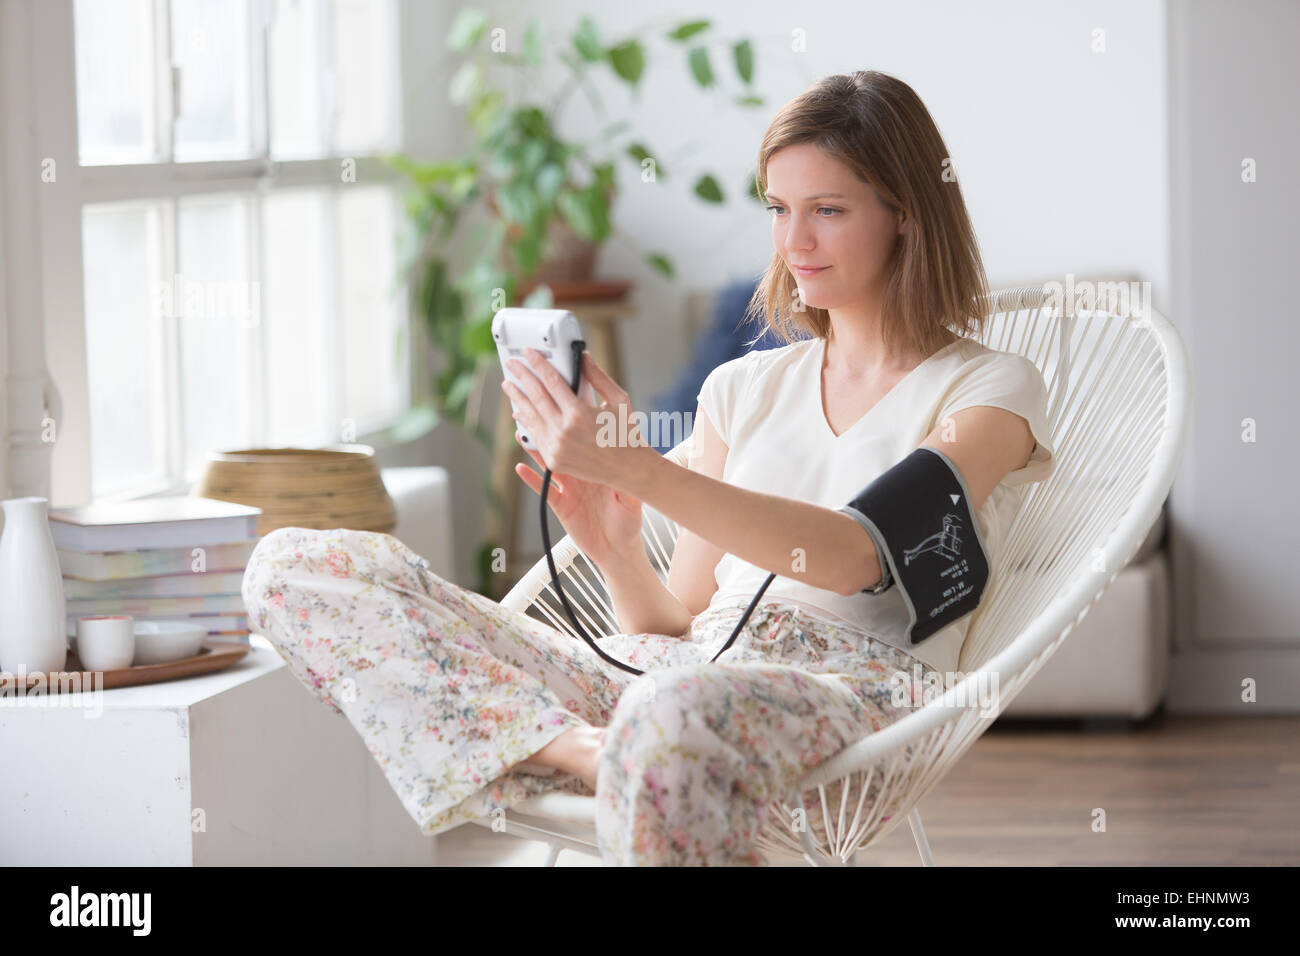 Woman taking her blood pressure with a portable blood pressure monitor. - Stock Image